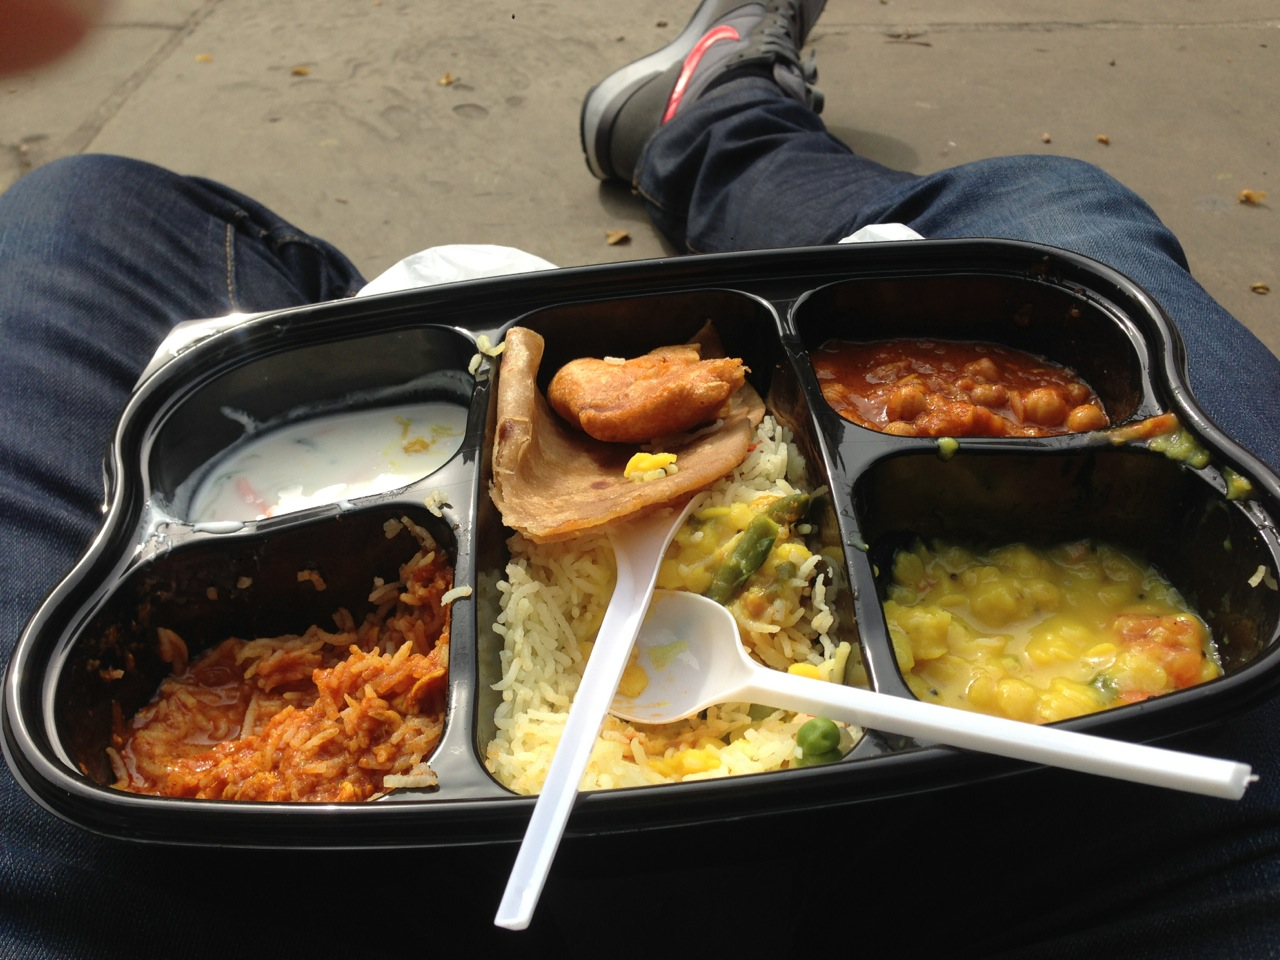 Street lunch in London